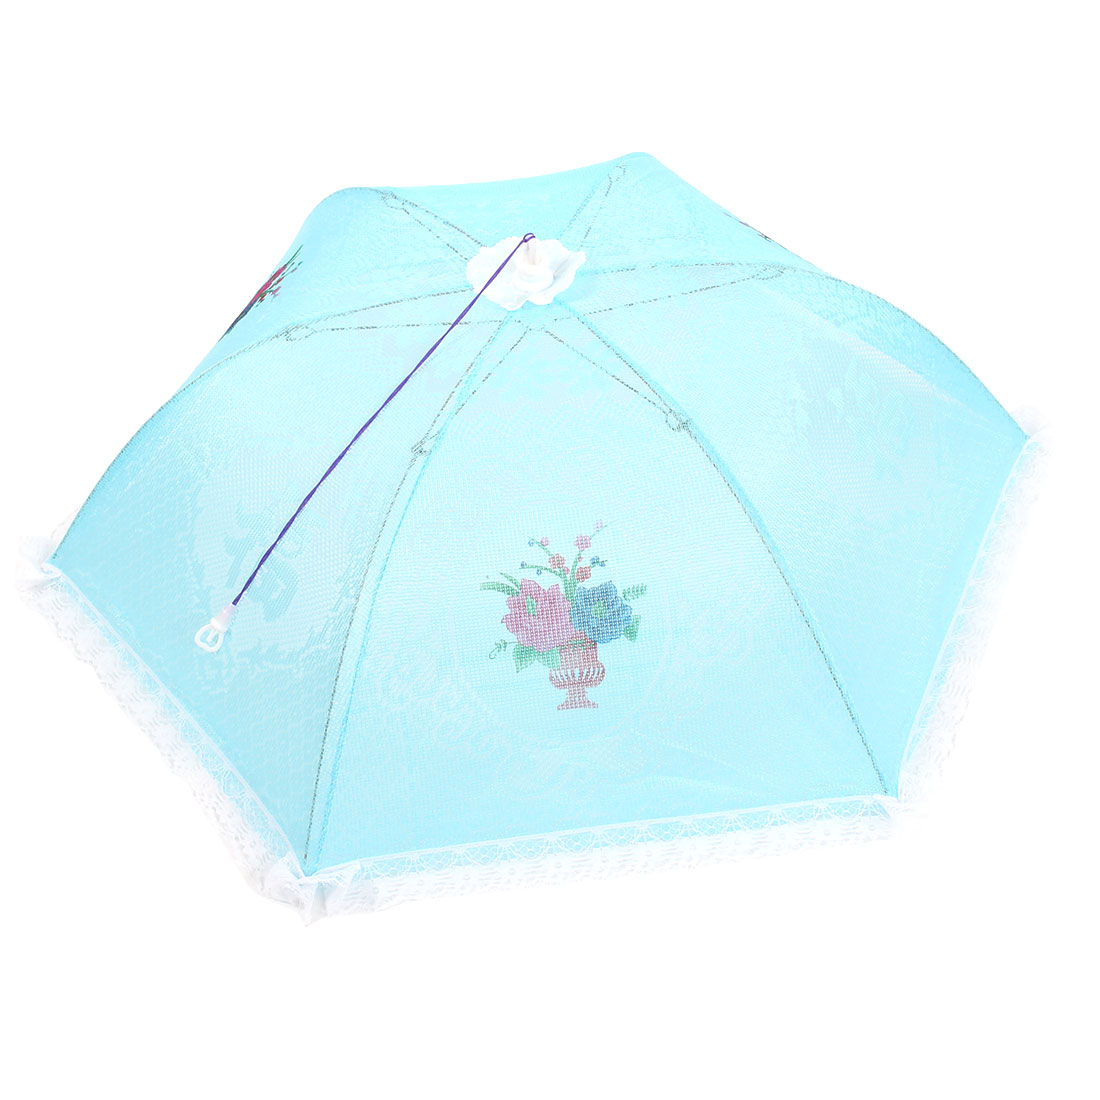 80cm Dia Kitchen Nylon Meshy Umbrella Shaped Flower Printed Foldable Food Cover Blue